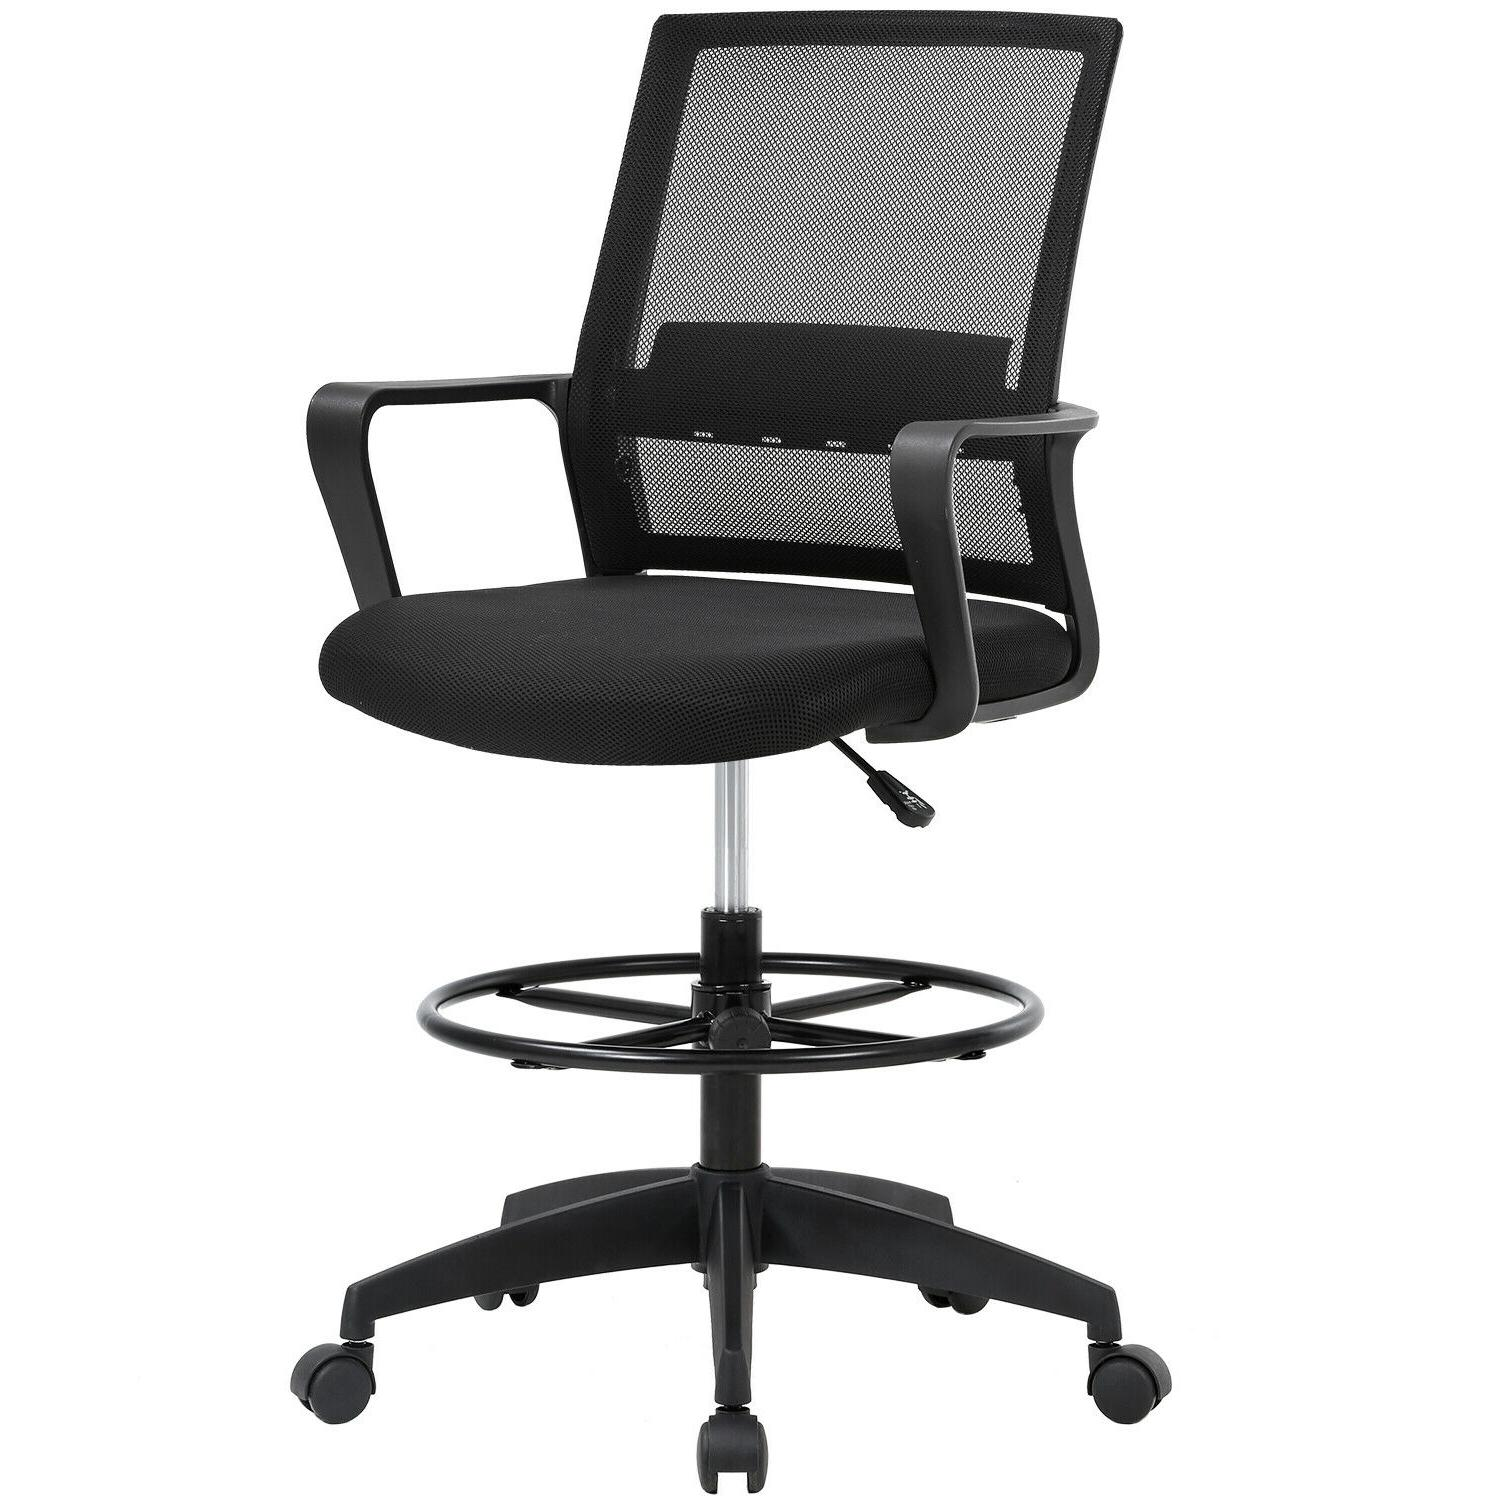 drafting chair tall office chair adjustable height